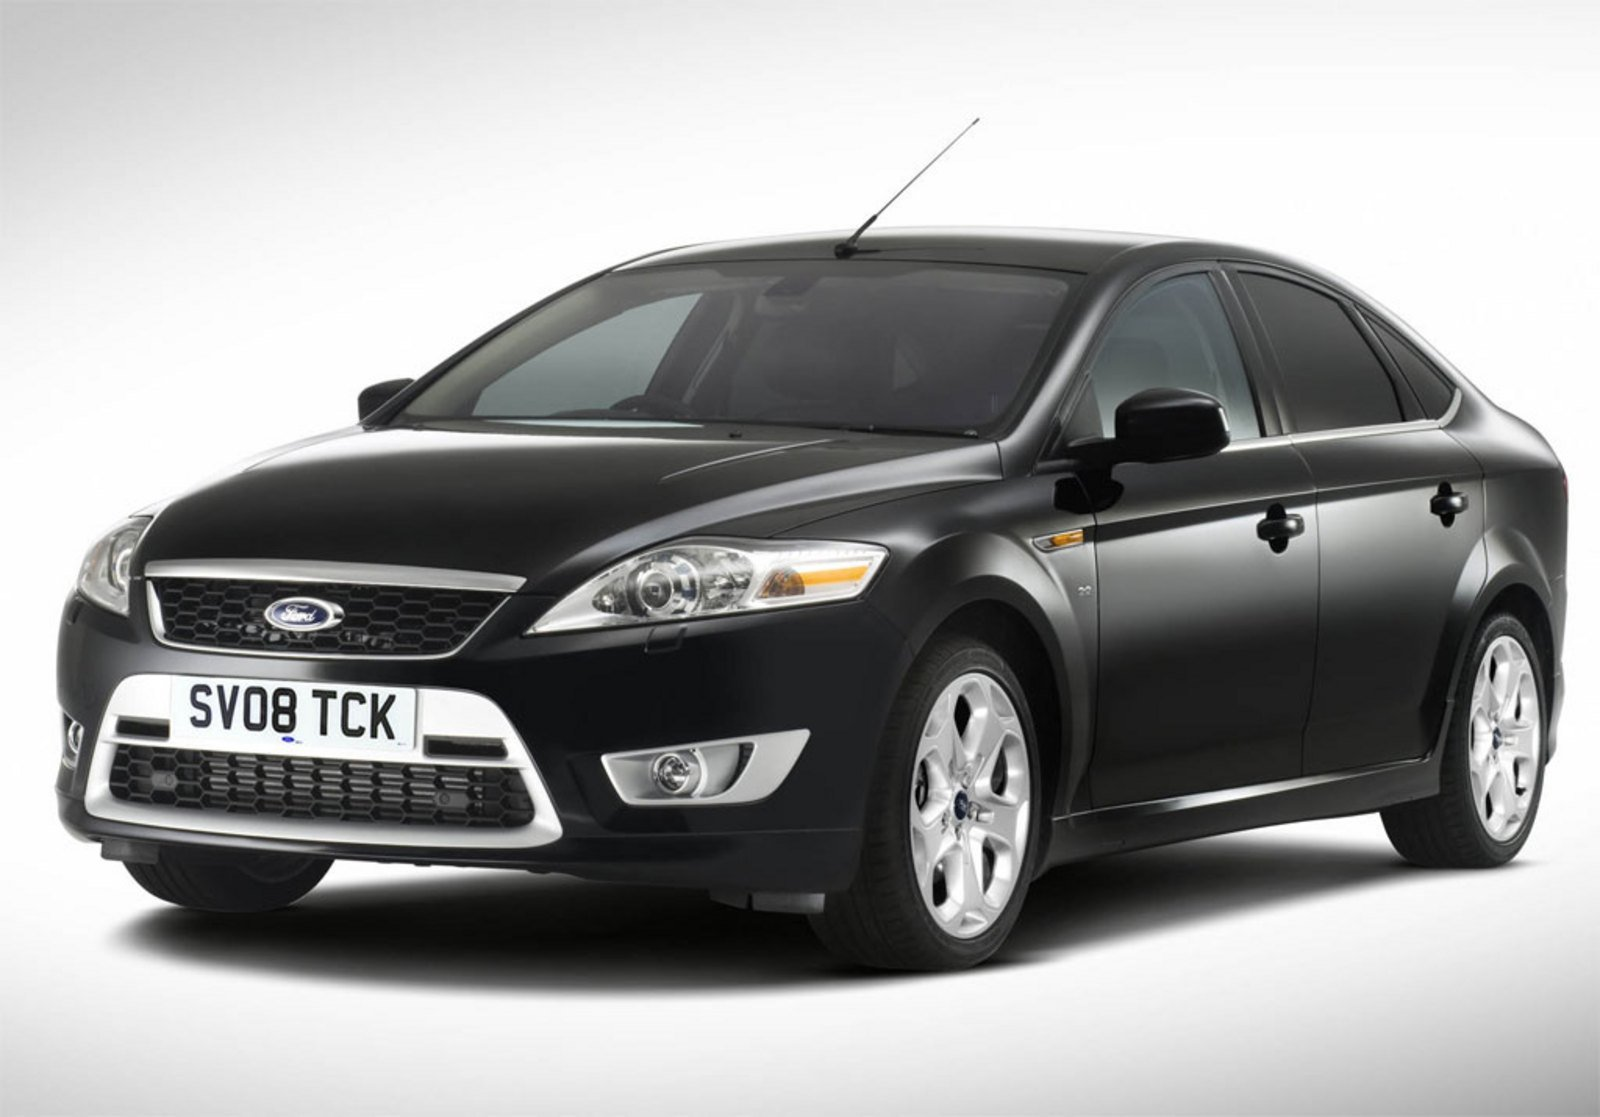 2008 ford mondeo titanium x sport review top speed. Black Bedroom Furniture Sets. Home Design Ideas